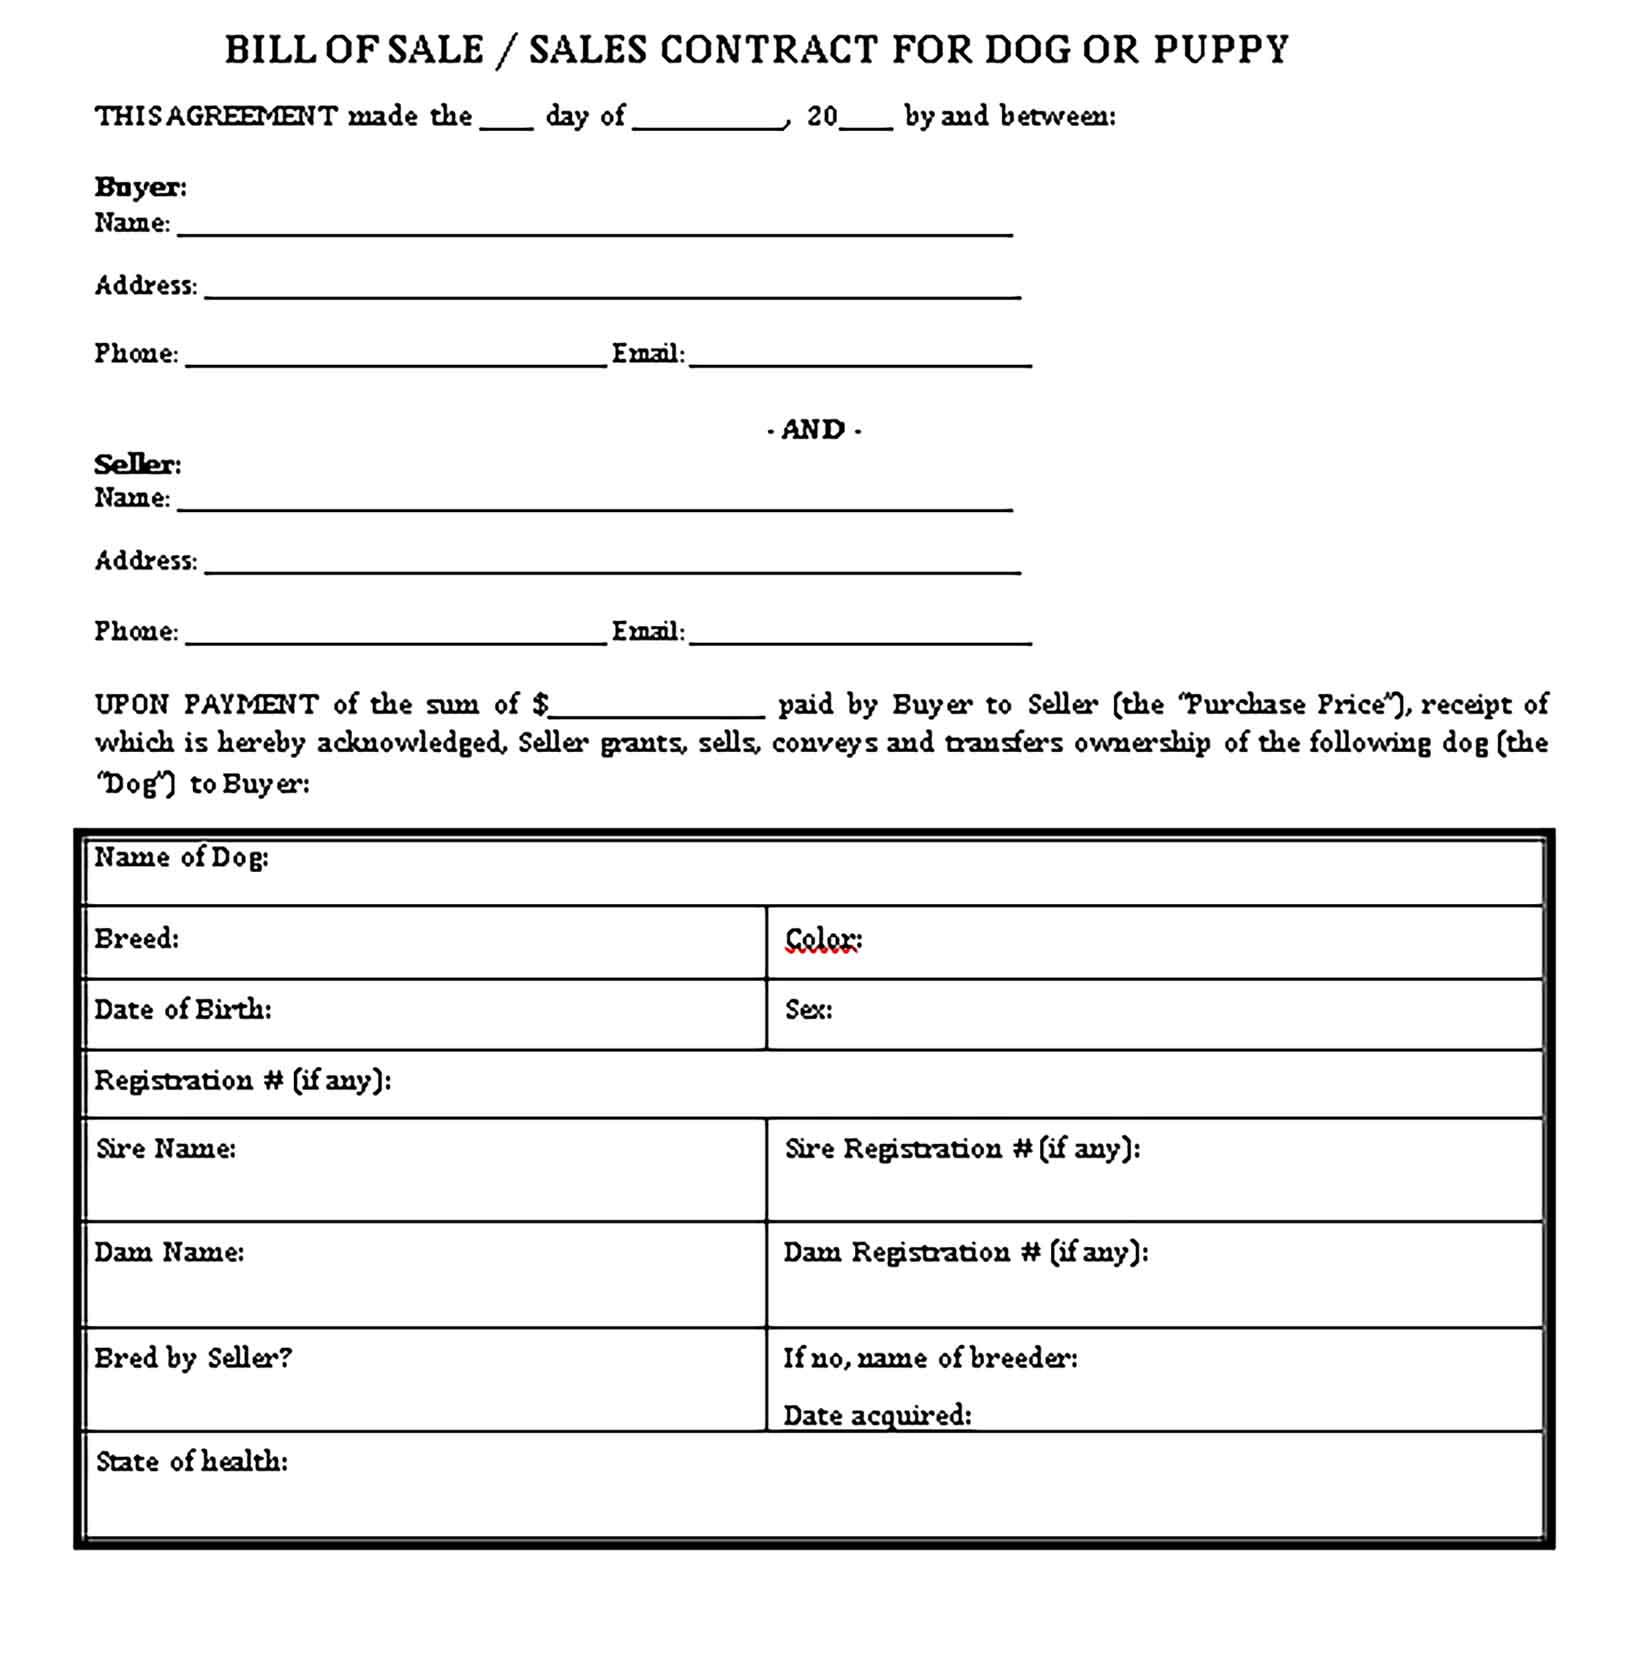 Sample Dog Bill of Sale 002 Templates